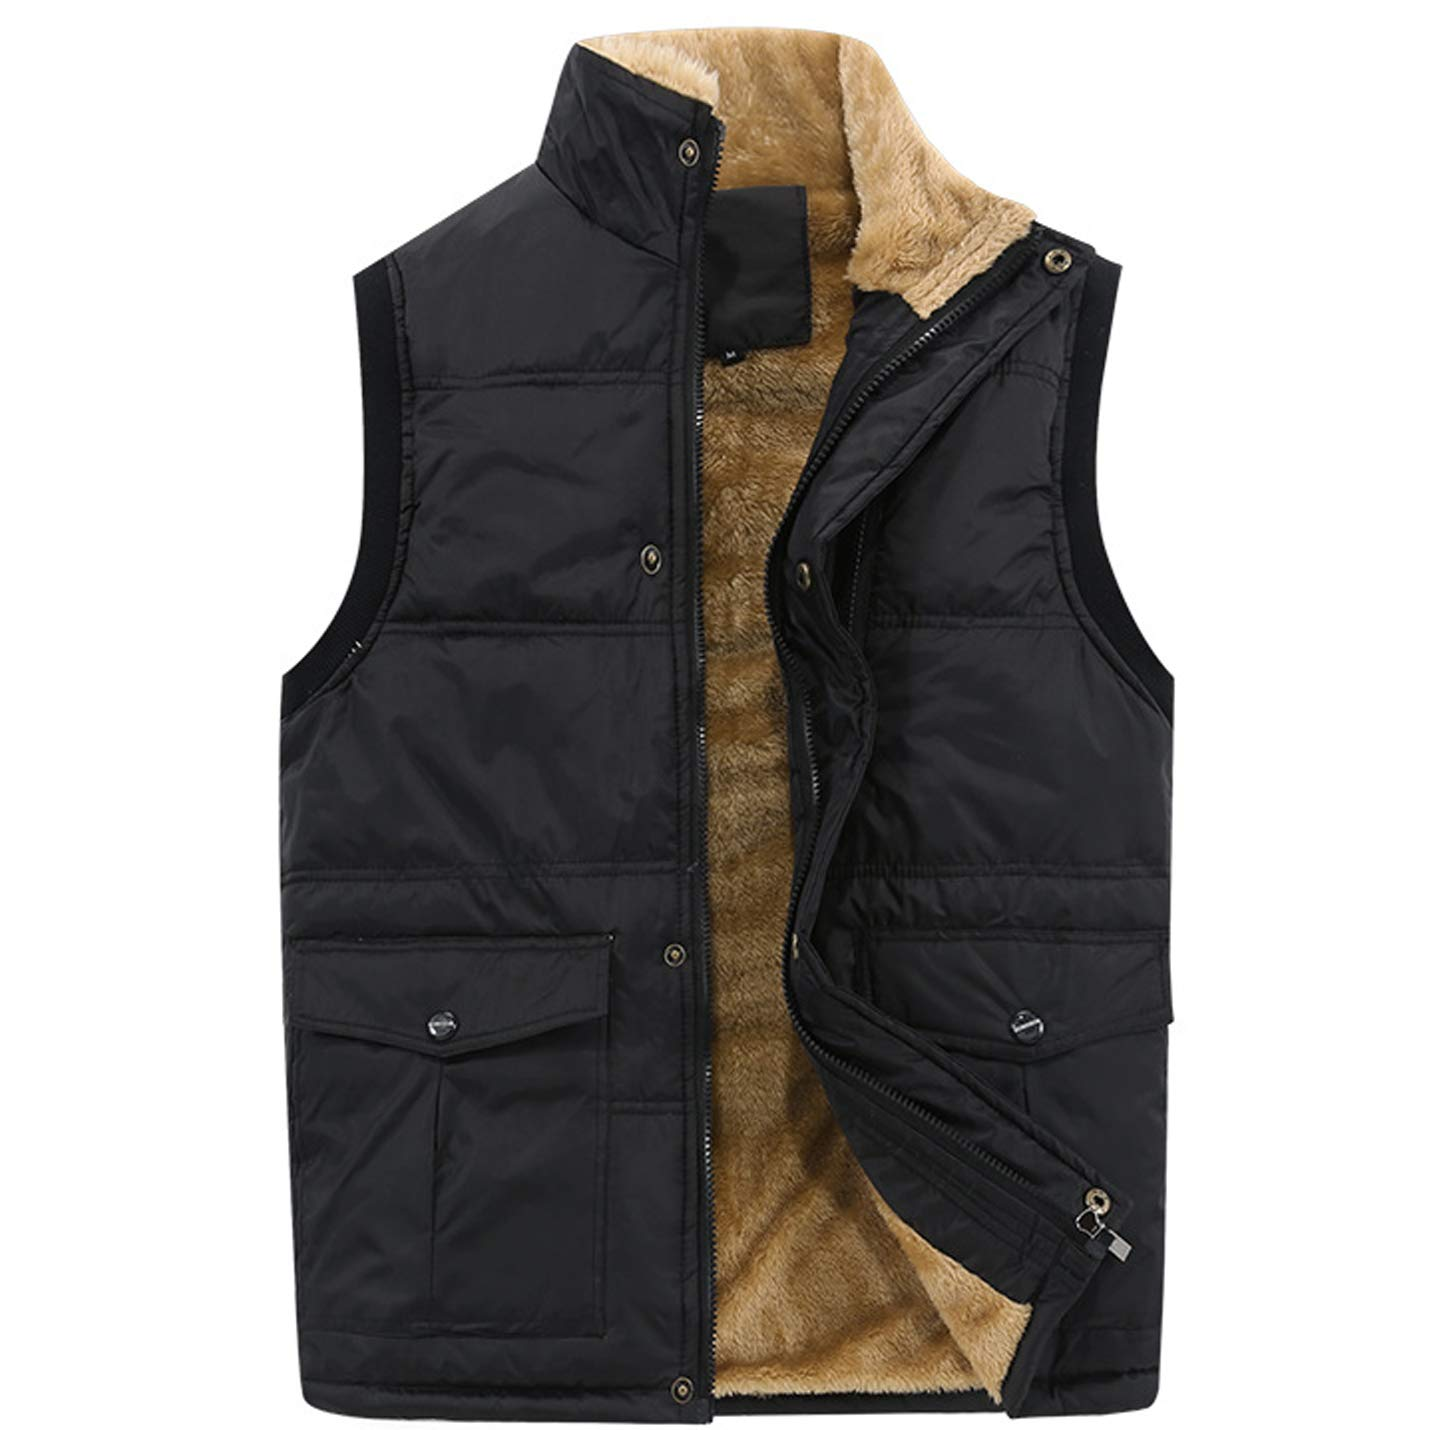 Flygo Men's Winter Warm Outdoor Padded Puffer Vest Thick Fleece Lined Sleeveless Jacket (Style 01 Black, Large+) by Flygo